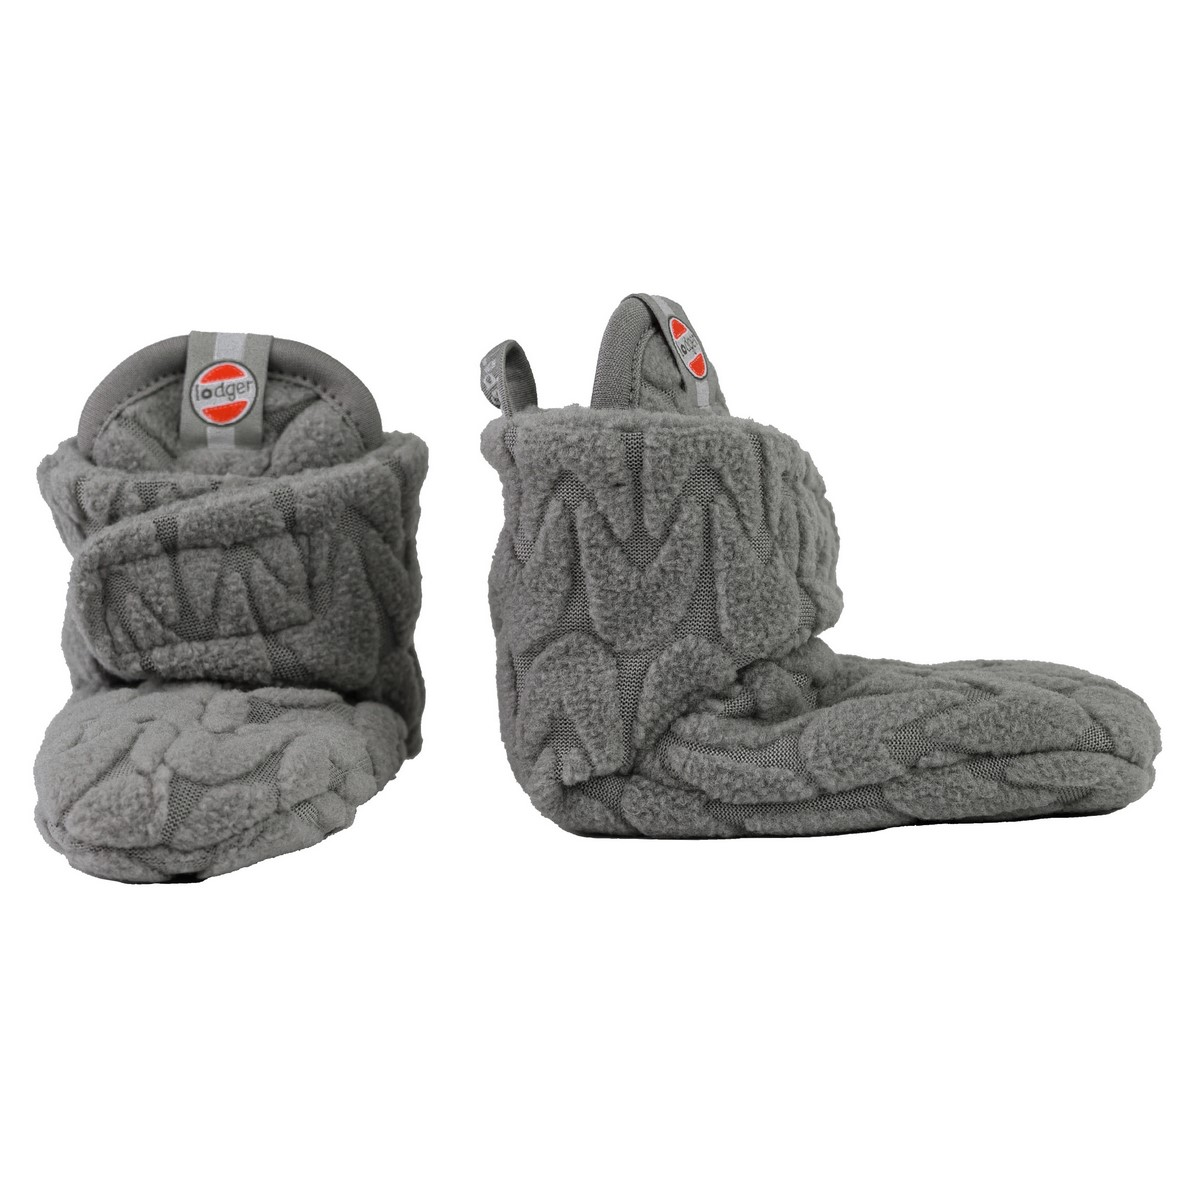 LODGER Slipper Fleece Empire Sharkskin 6 - 12 měsíců